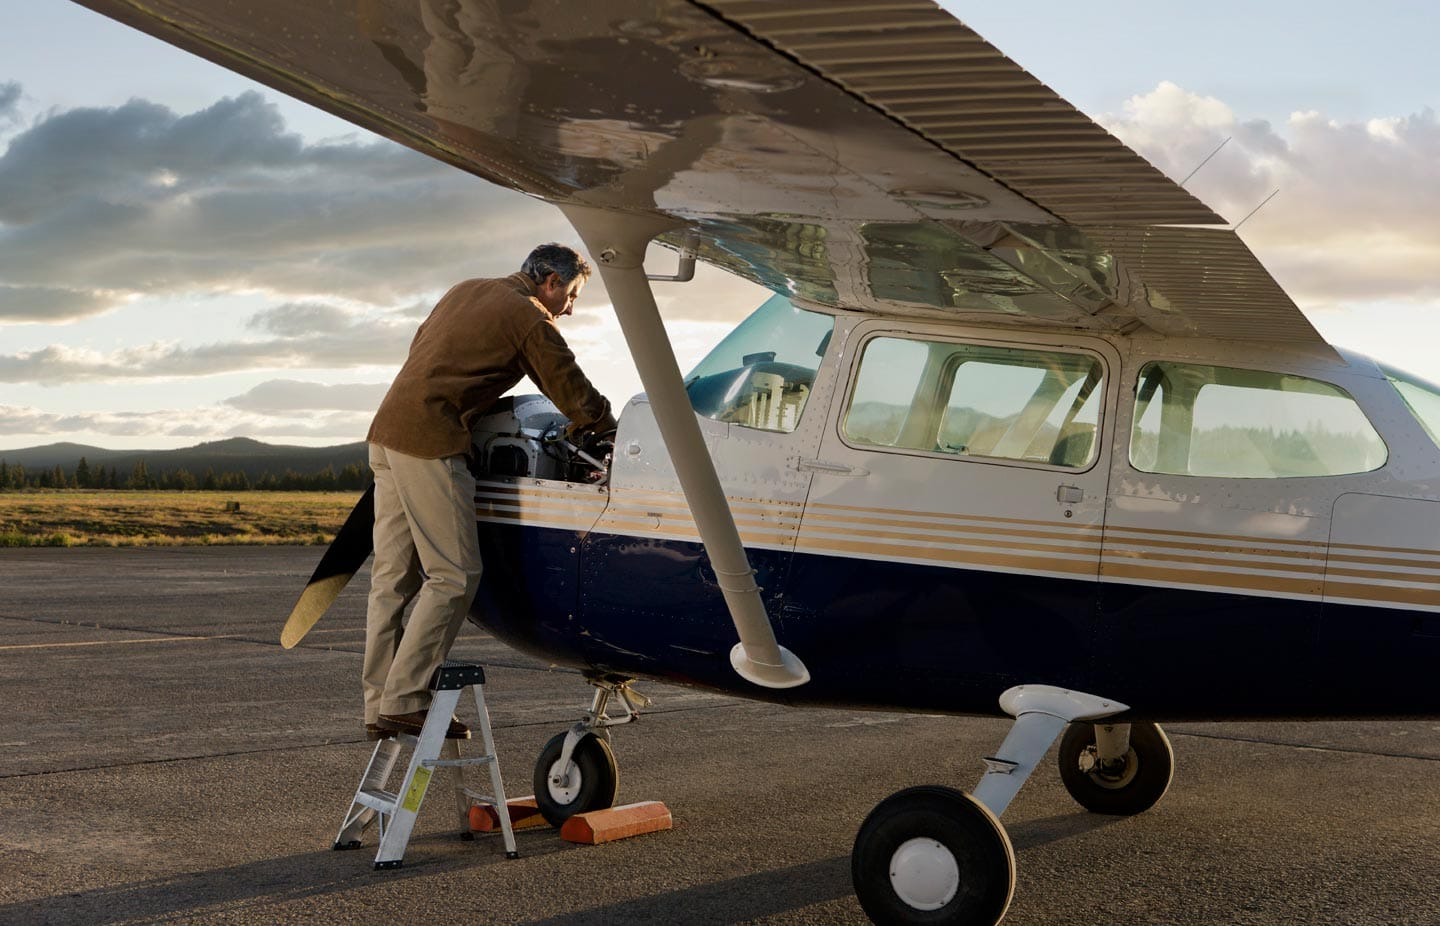 Man on Step Stool Fixing Private Plane